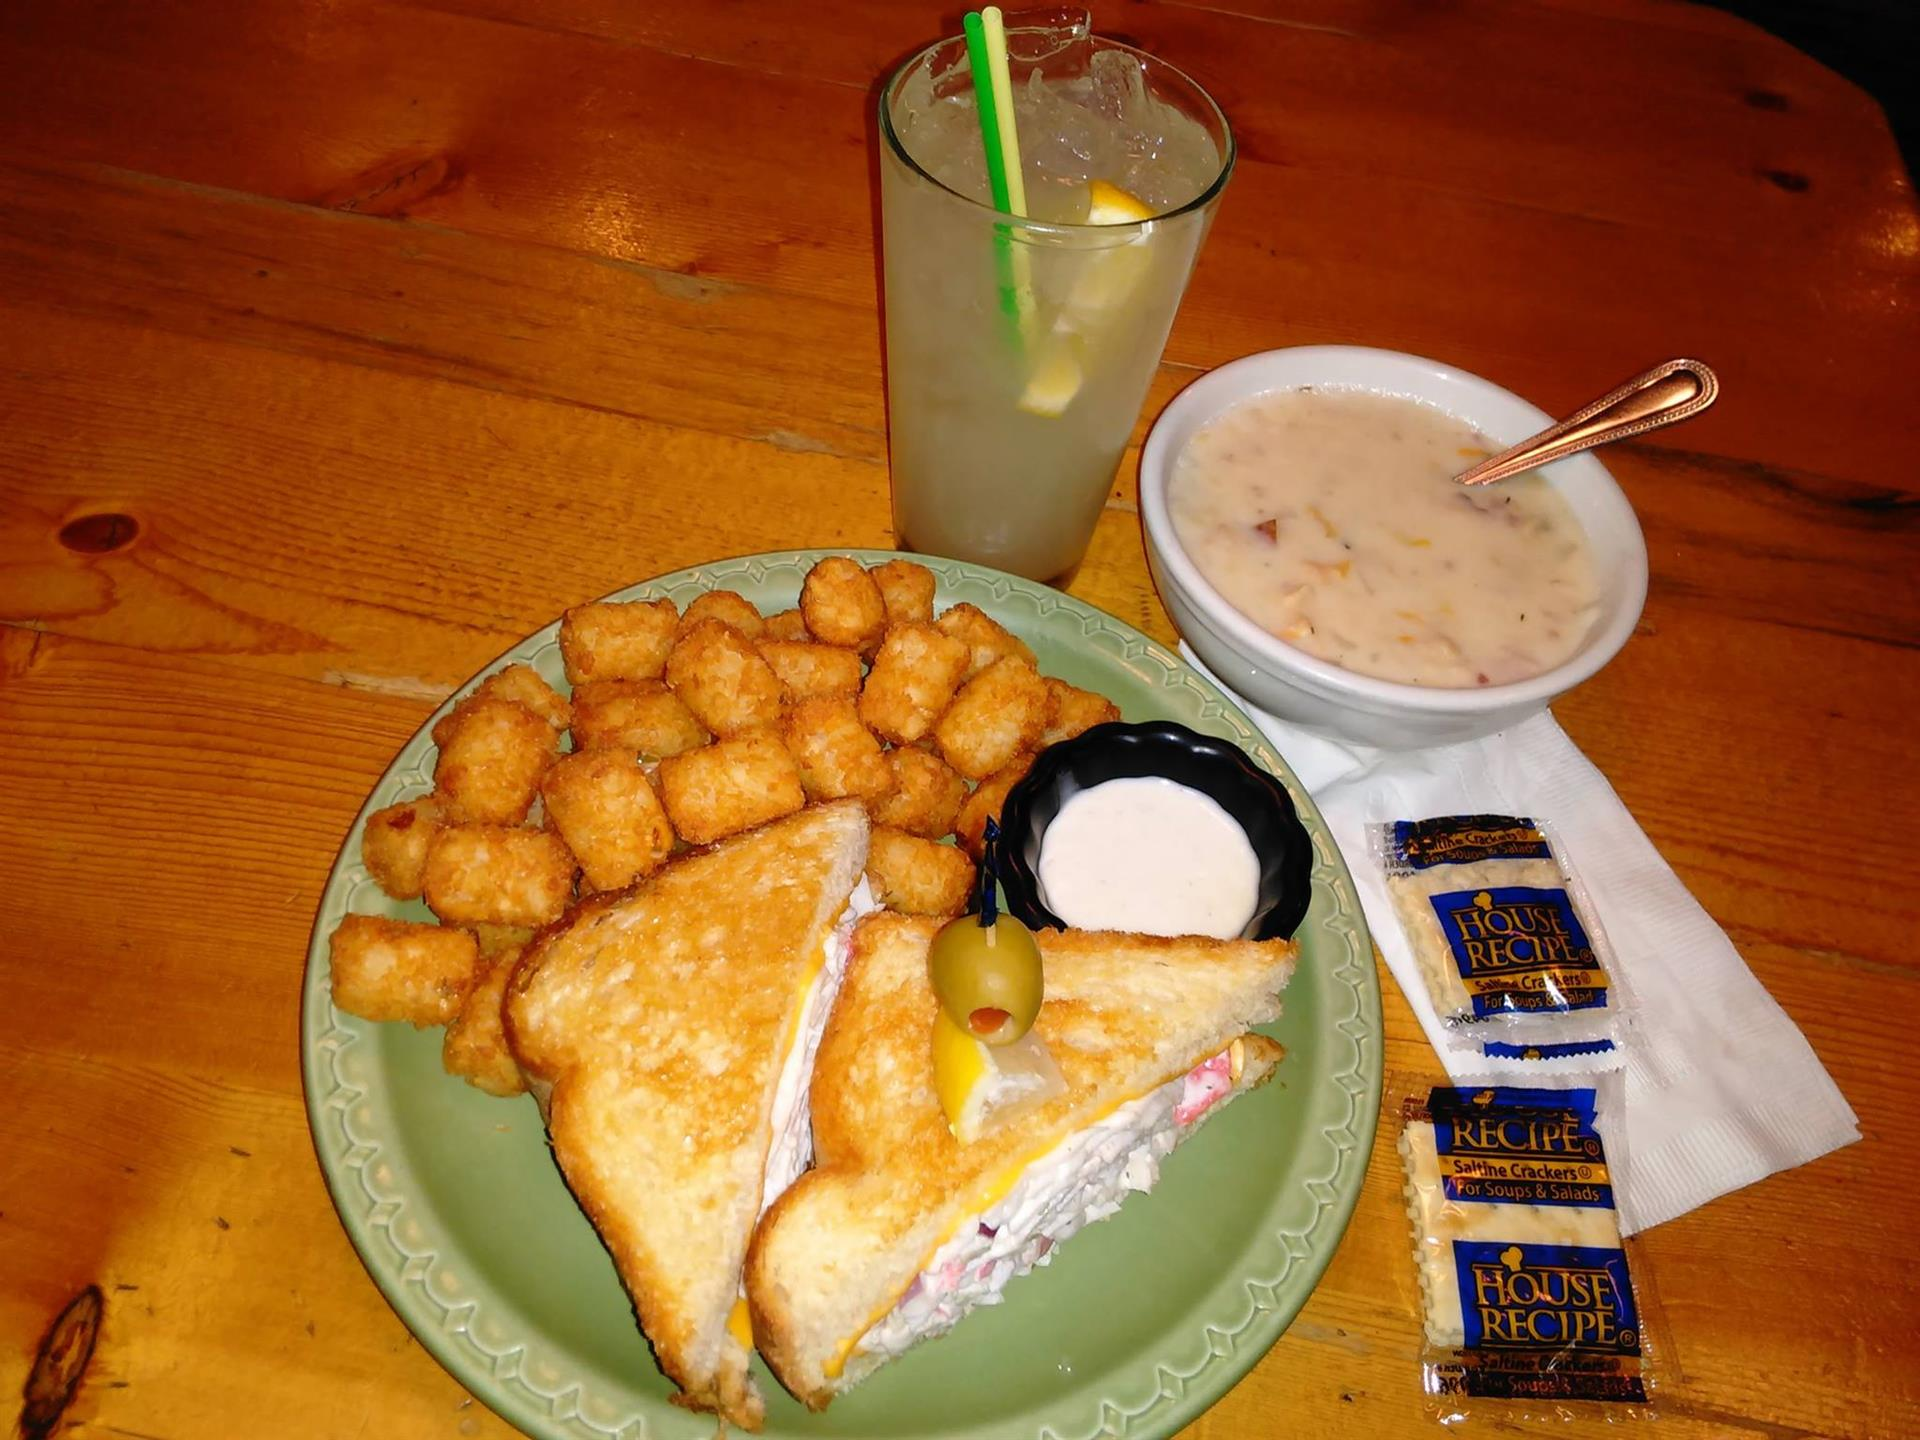 Sandwich with tater tots and cup of soup, water with lemon on wood table